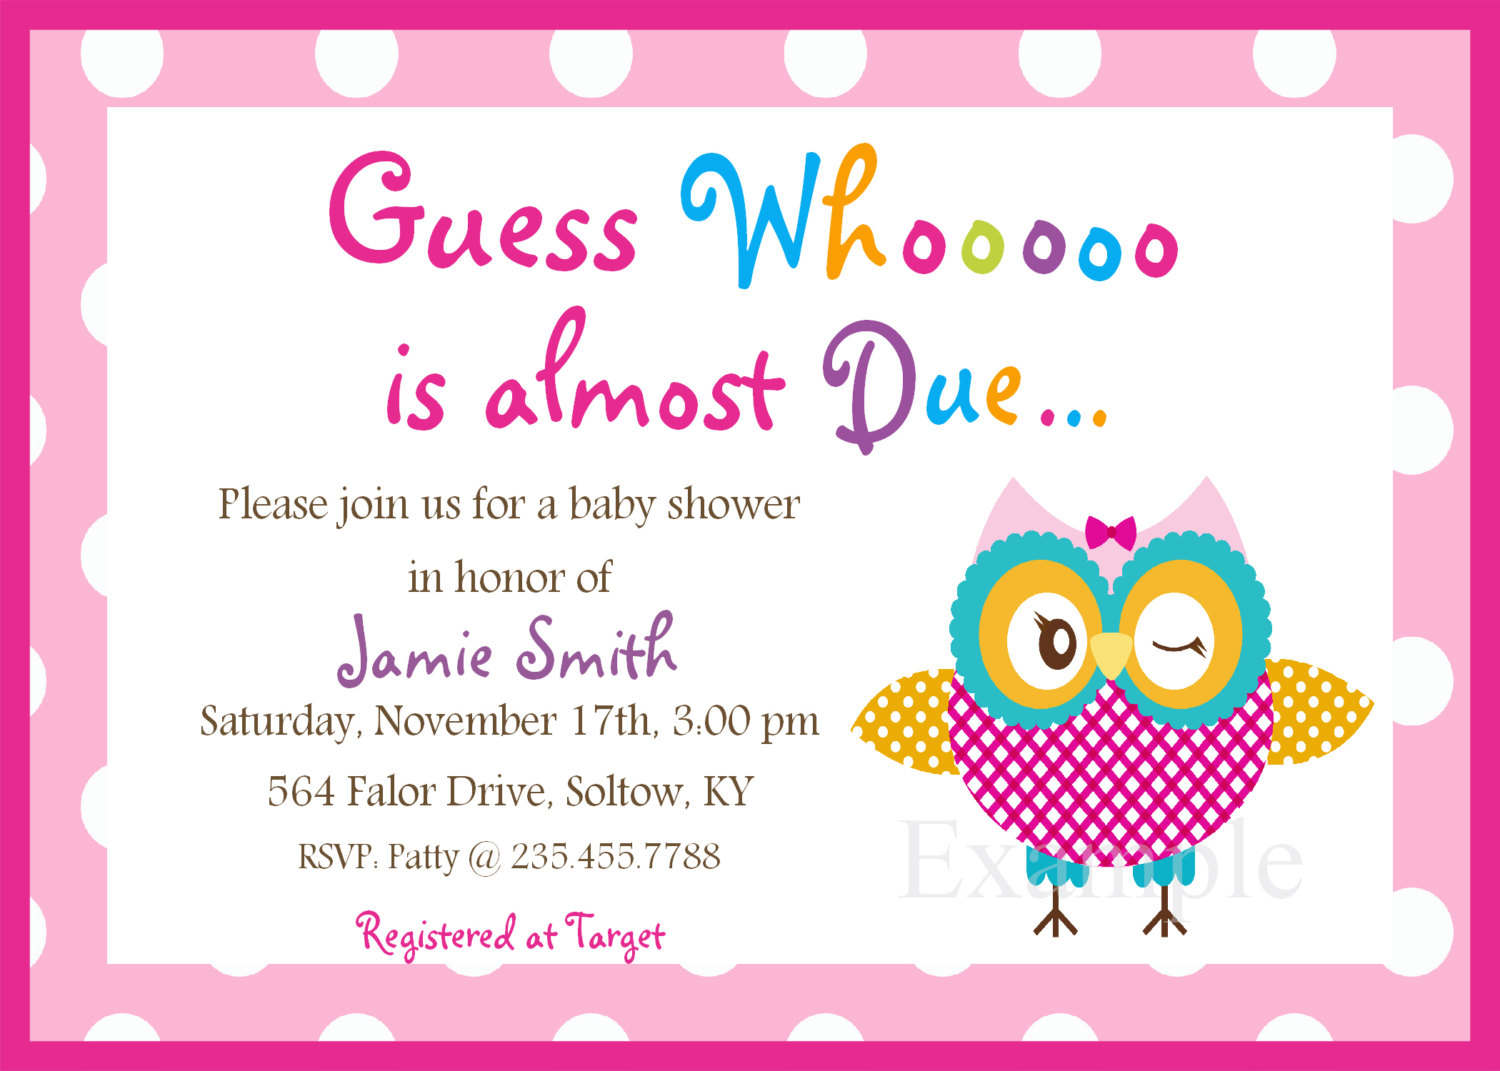 Full Size of Baby Shower:63+ Delightful Cheap Baby Shower Invitations Image Inspirations Cheap Baby Shower Invitations Baby Shower Centerpieces Baby Shower Flowers Baby Shower Props Adornos De Baby Shower